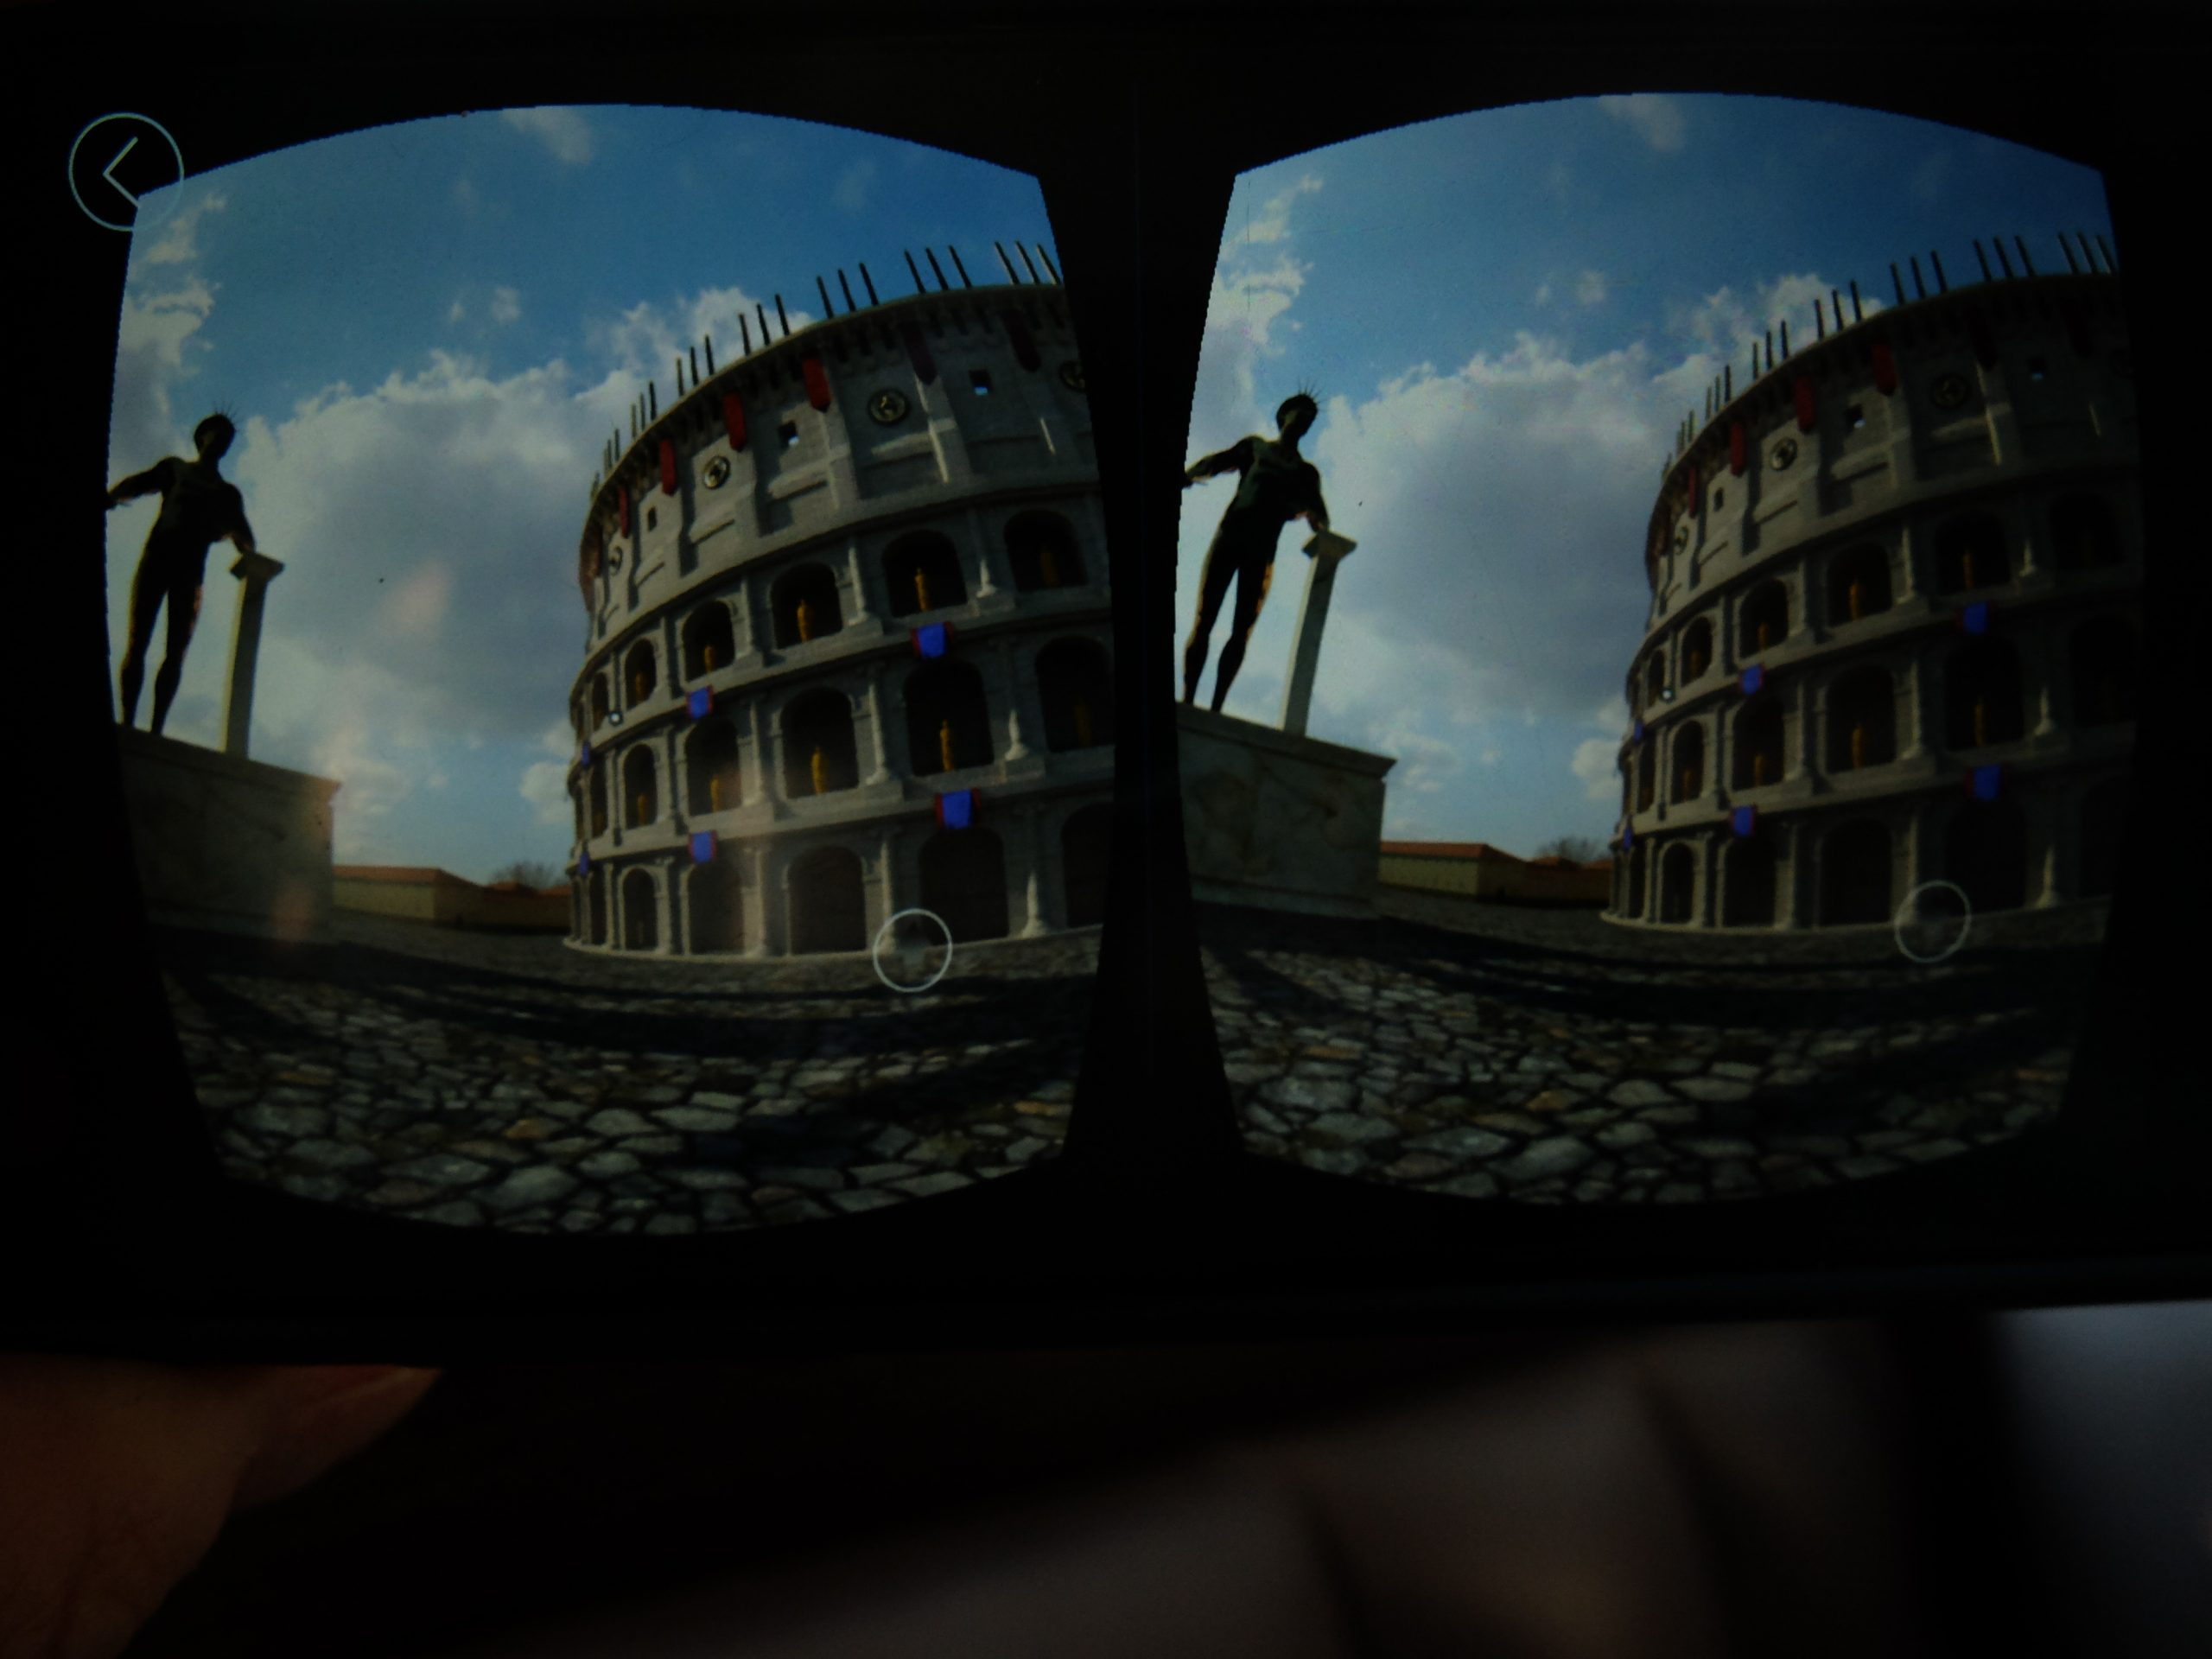 Tour company Livitaly have just introduced virtual reality goggles to their tour of the Colosseum, Palatine Hill and the Roman Forum, allowing travellers on their tours to scan now derilict monuments and see what they might have looked like in all their glory.